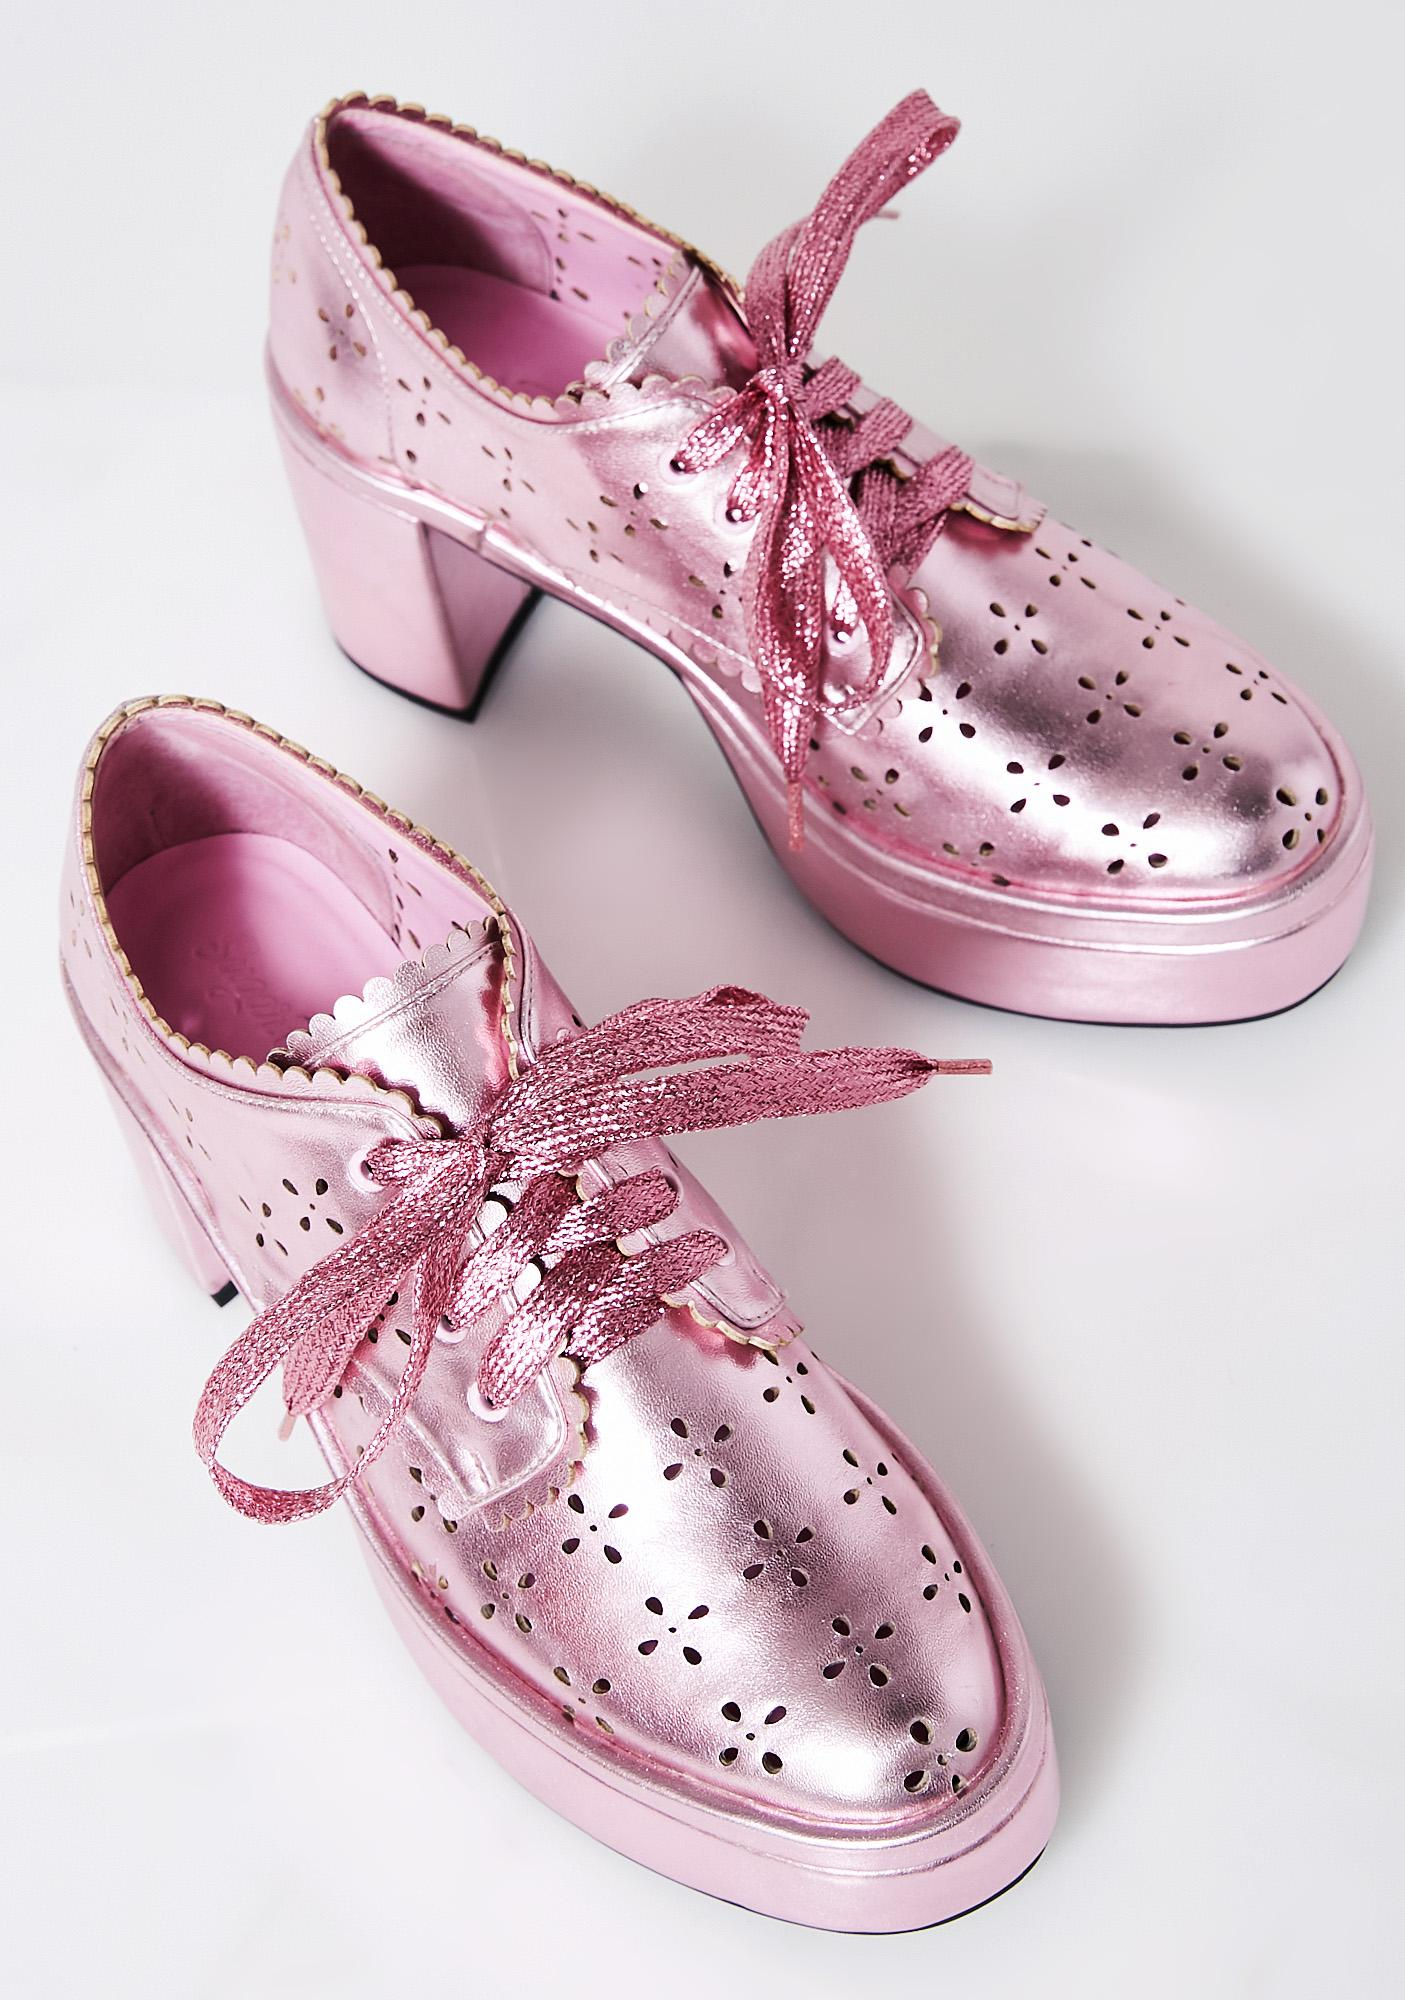 Sugar Thrillz Prairie Scalloped Oxfords